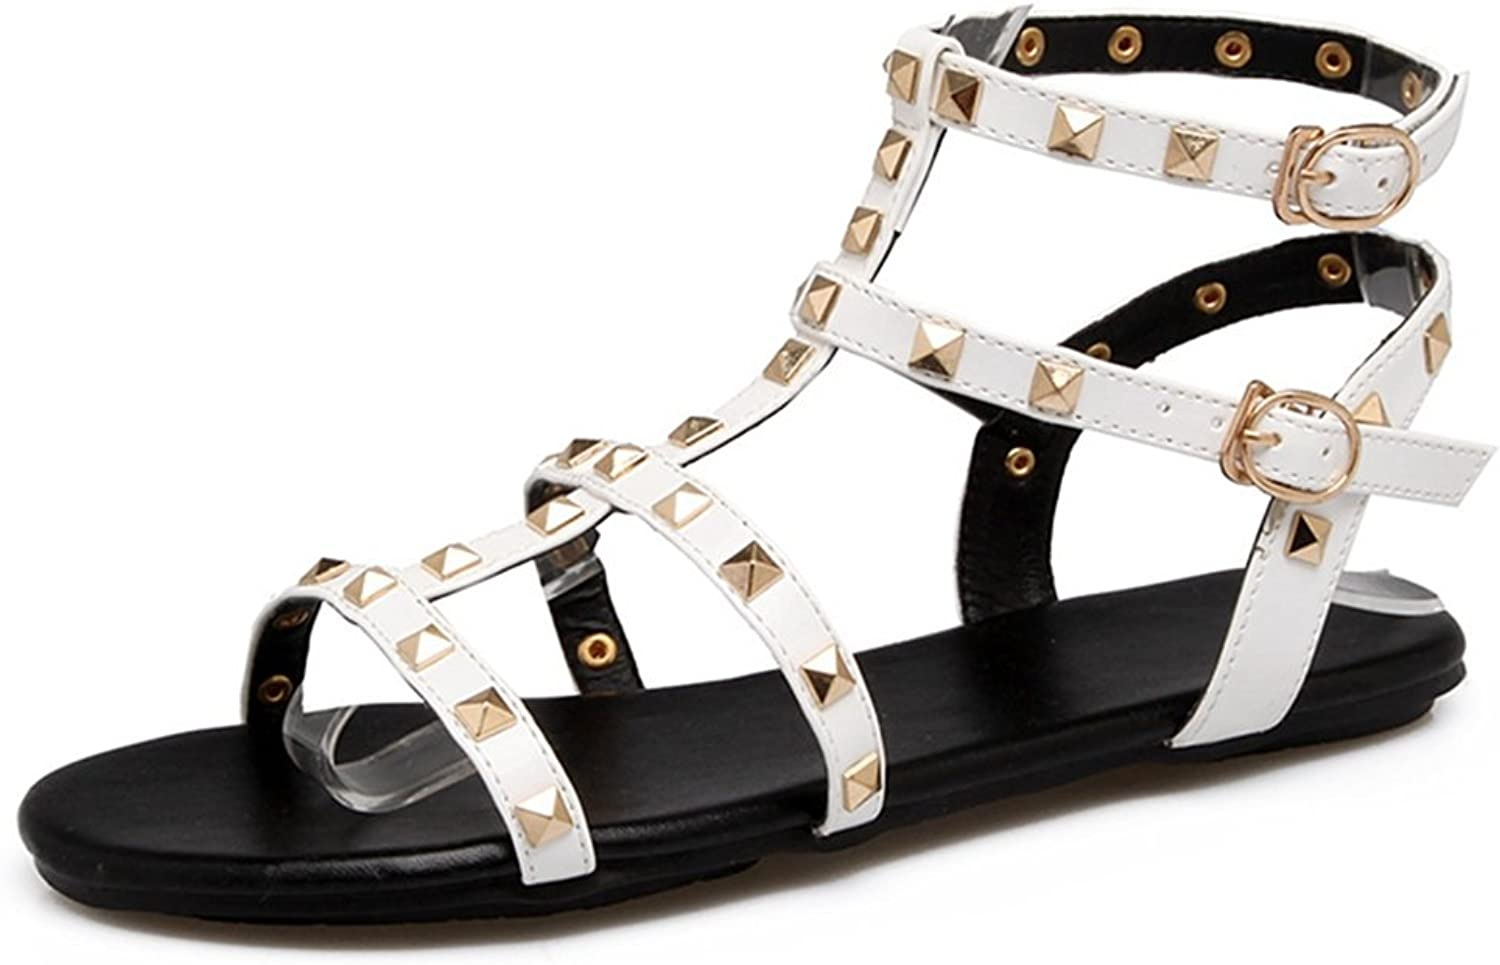 CYBLING Women's Rivets Studs Flat Sandals Ankle Strap Buckle Gladiator Summer Dress shoes